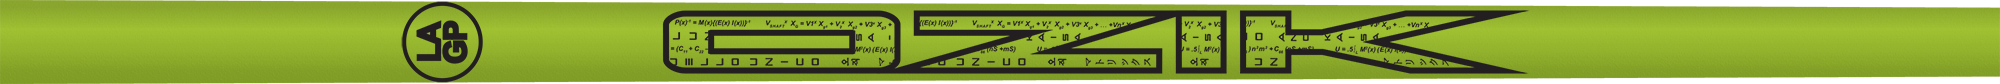 Ozik White Tie: Neon Yellow Black Matte - Wood 60 R